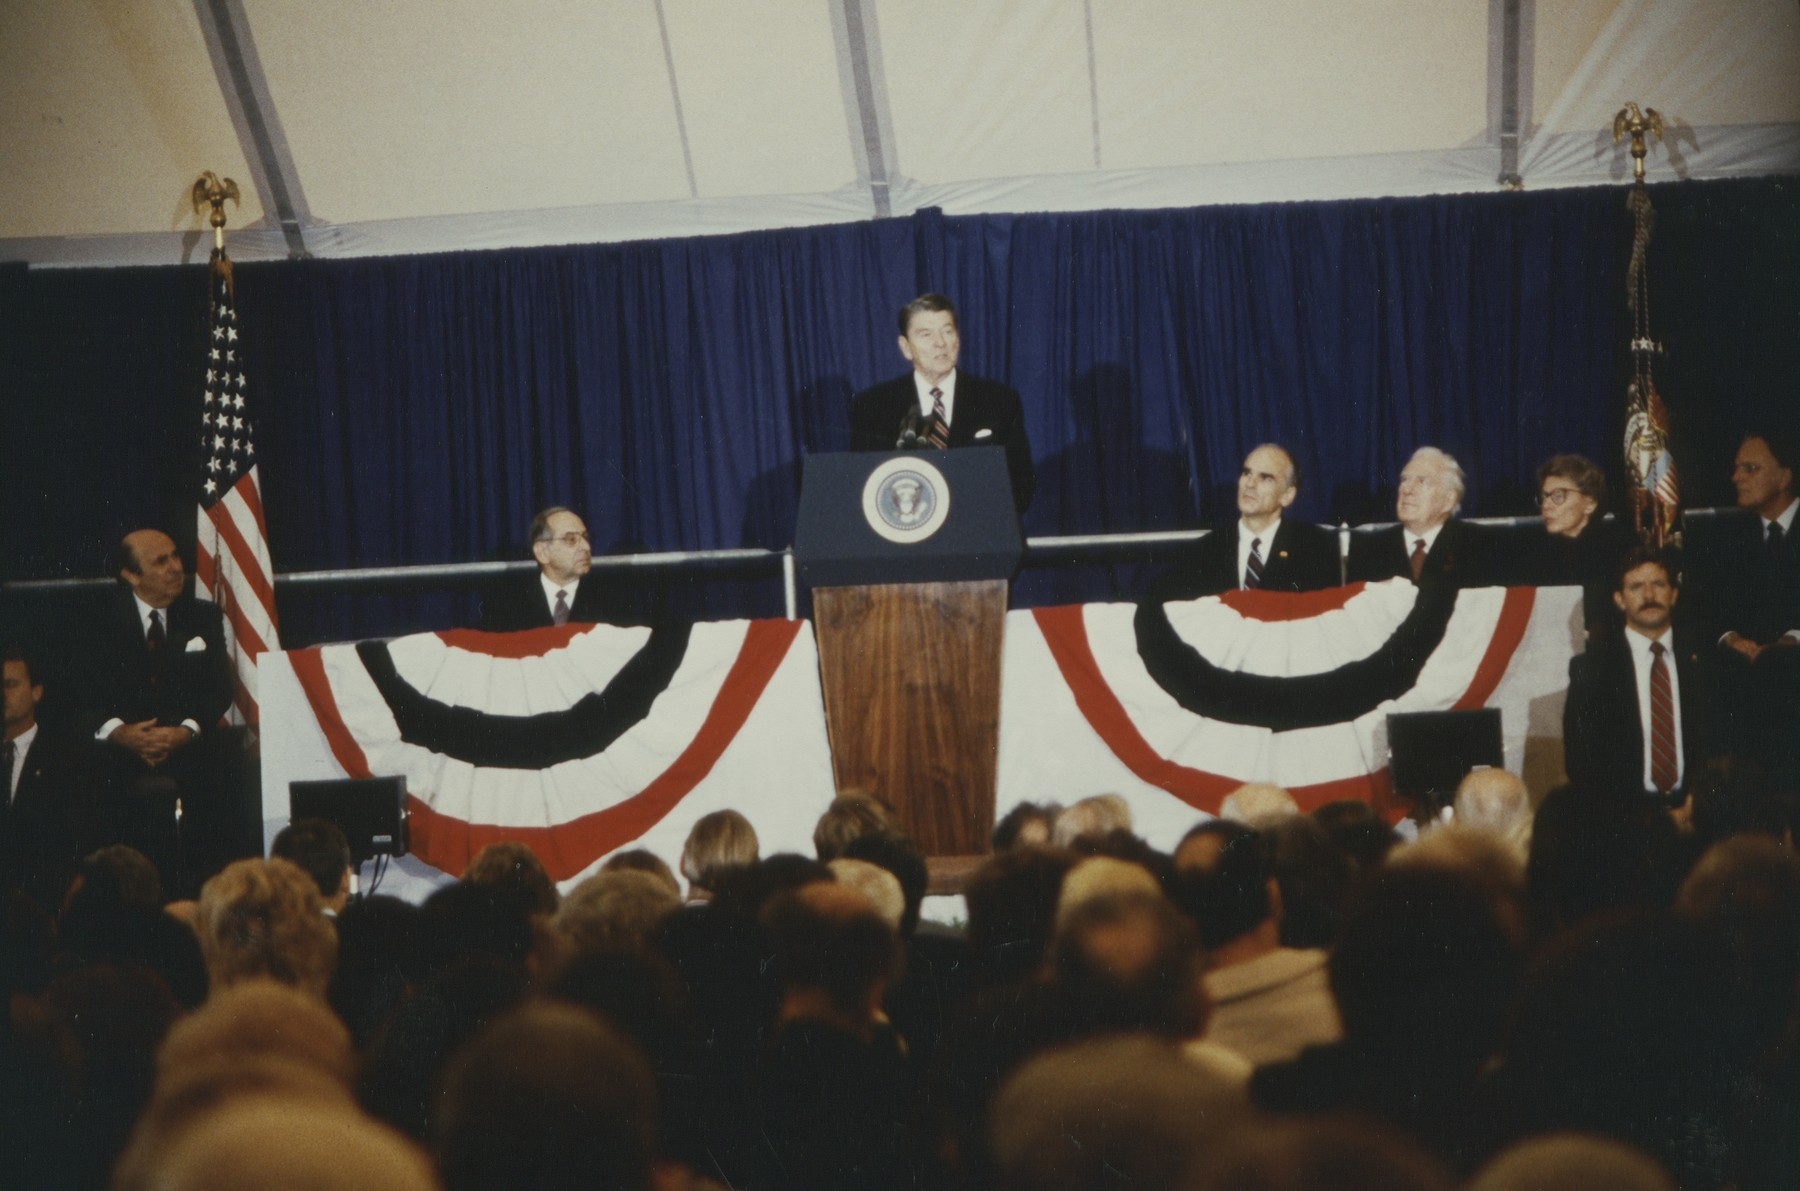 Ronald Reagan speaking at the laying of the cornerstone ceremony of the U.S. Holocaust Memorial Museum.